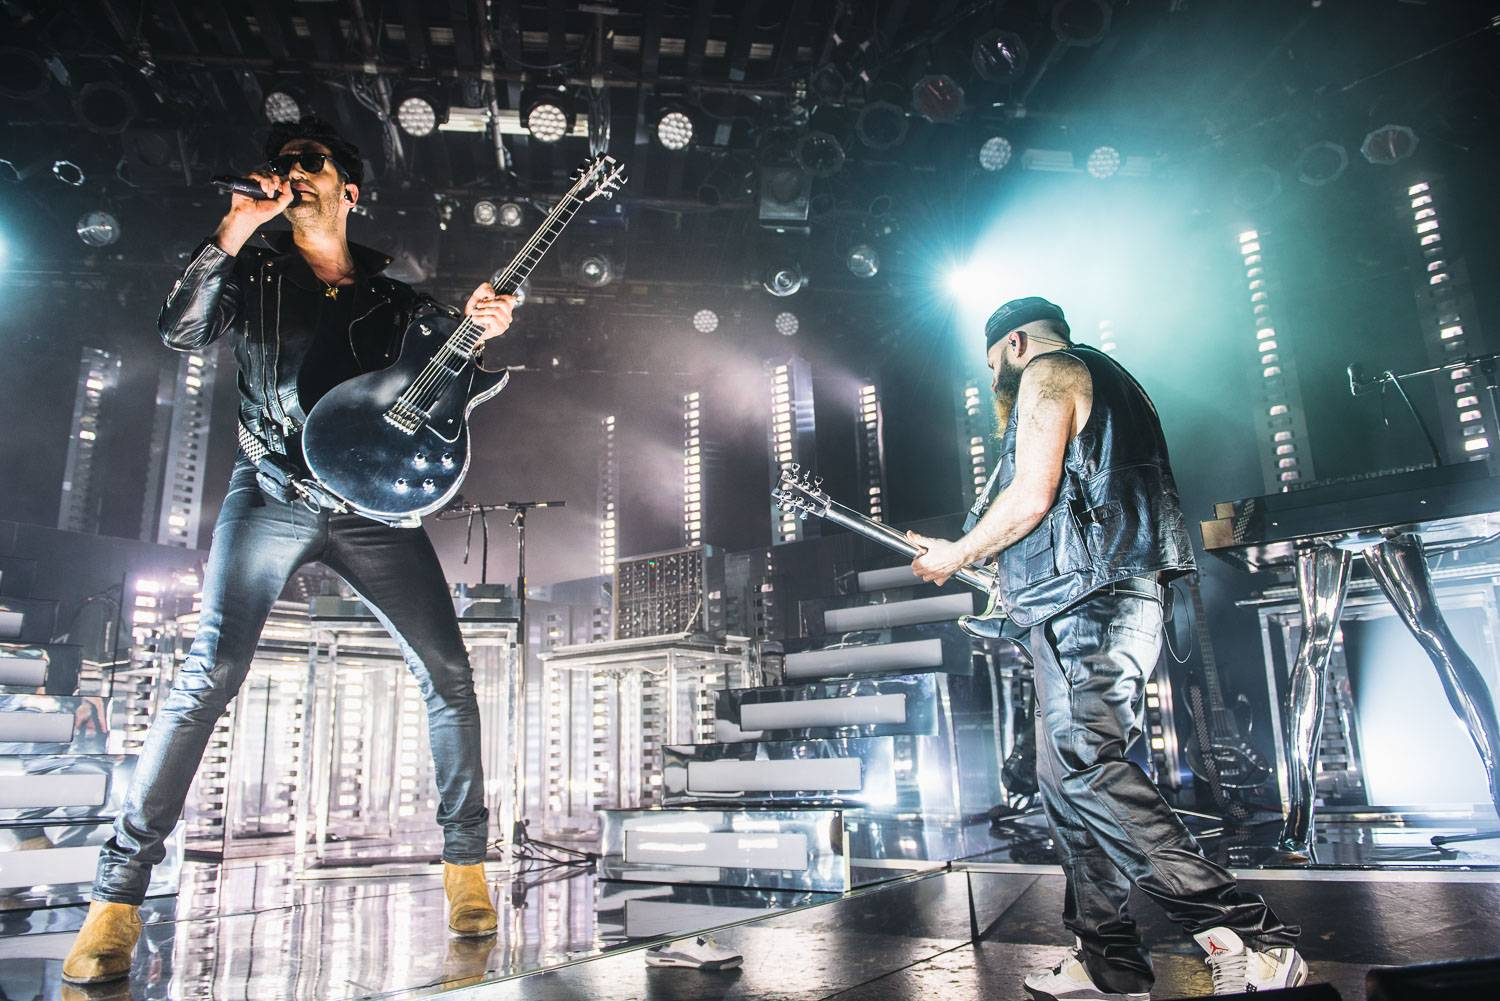 Photos - Chromeo at the Commodore Ballroom, Vancouver, April 3 2018. Pavel Boiko photo.